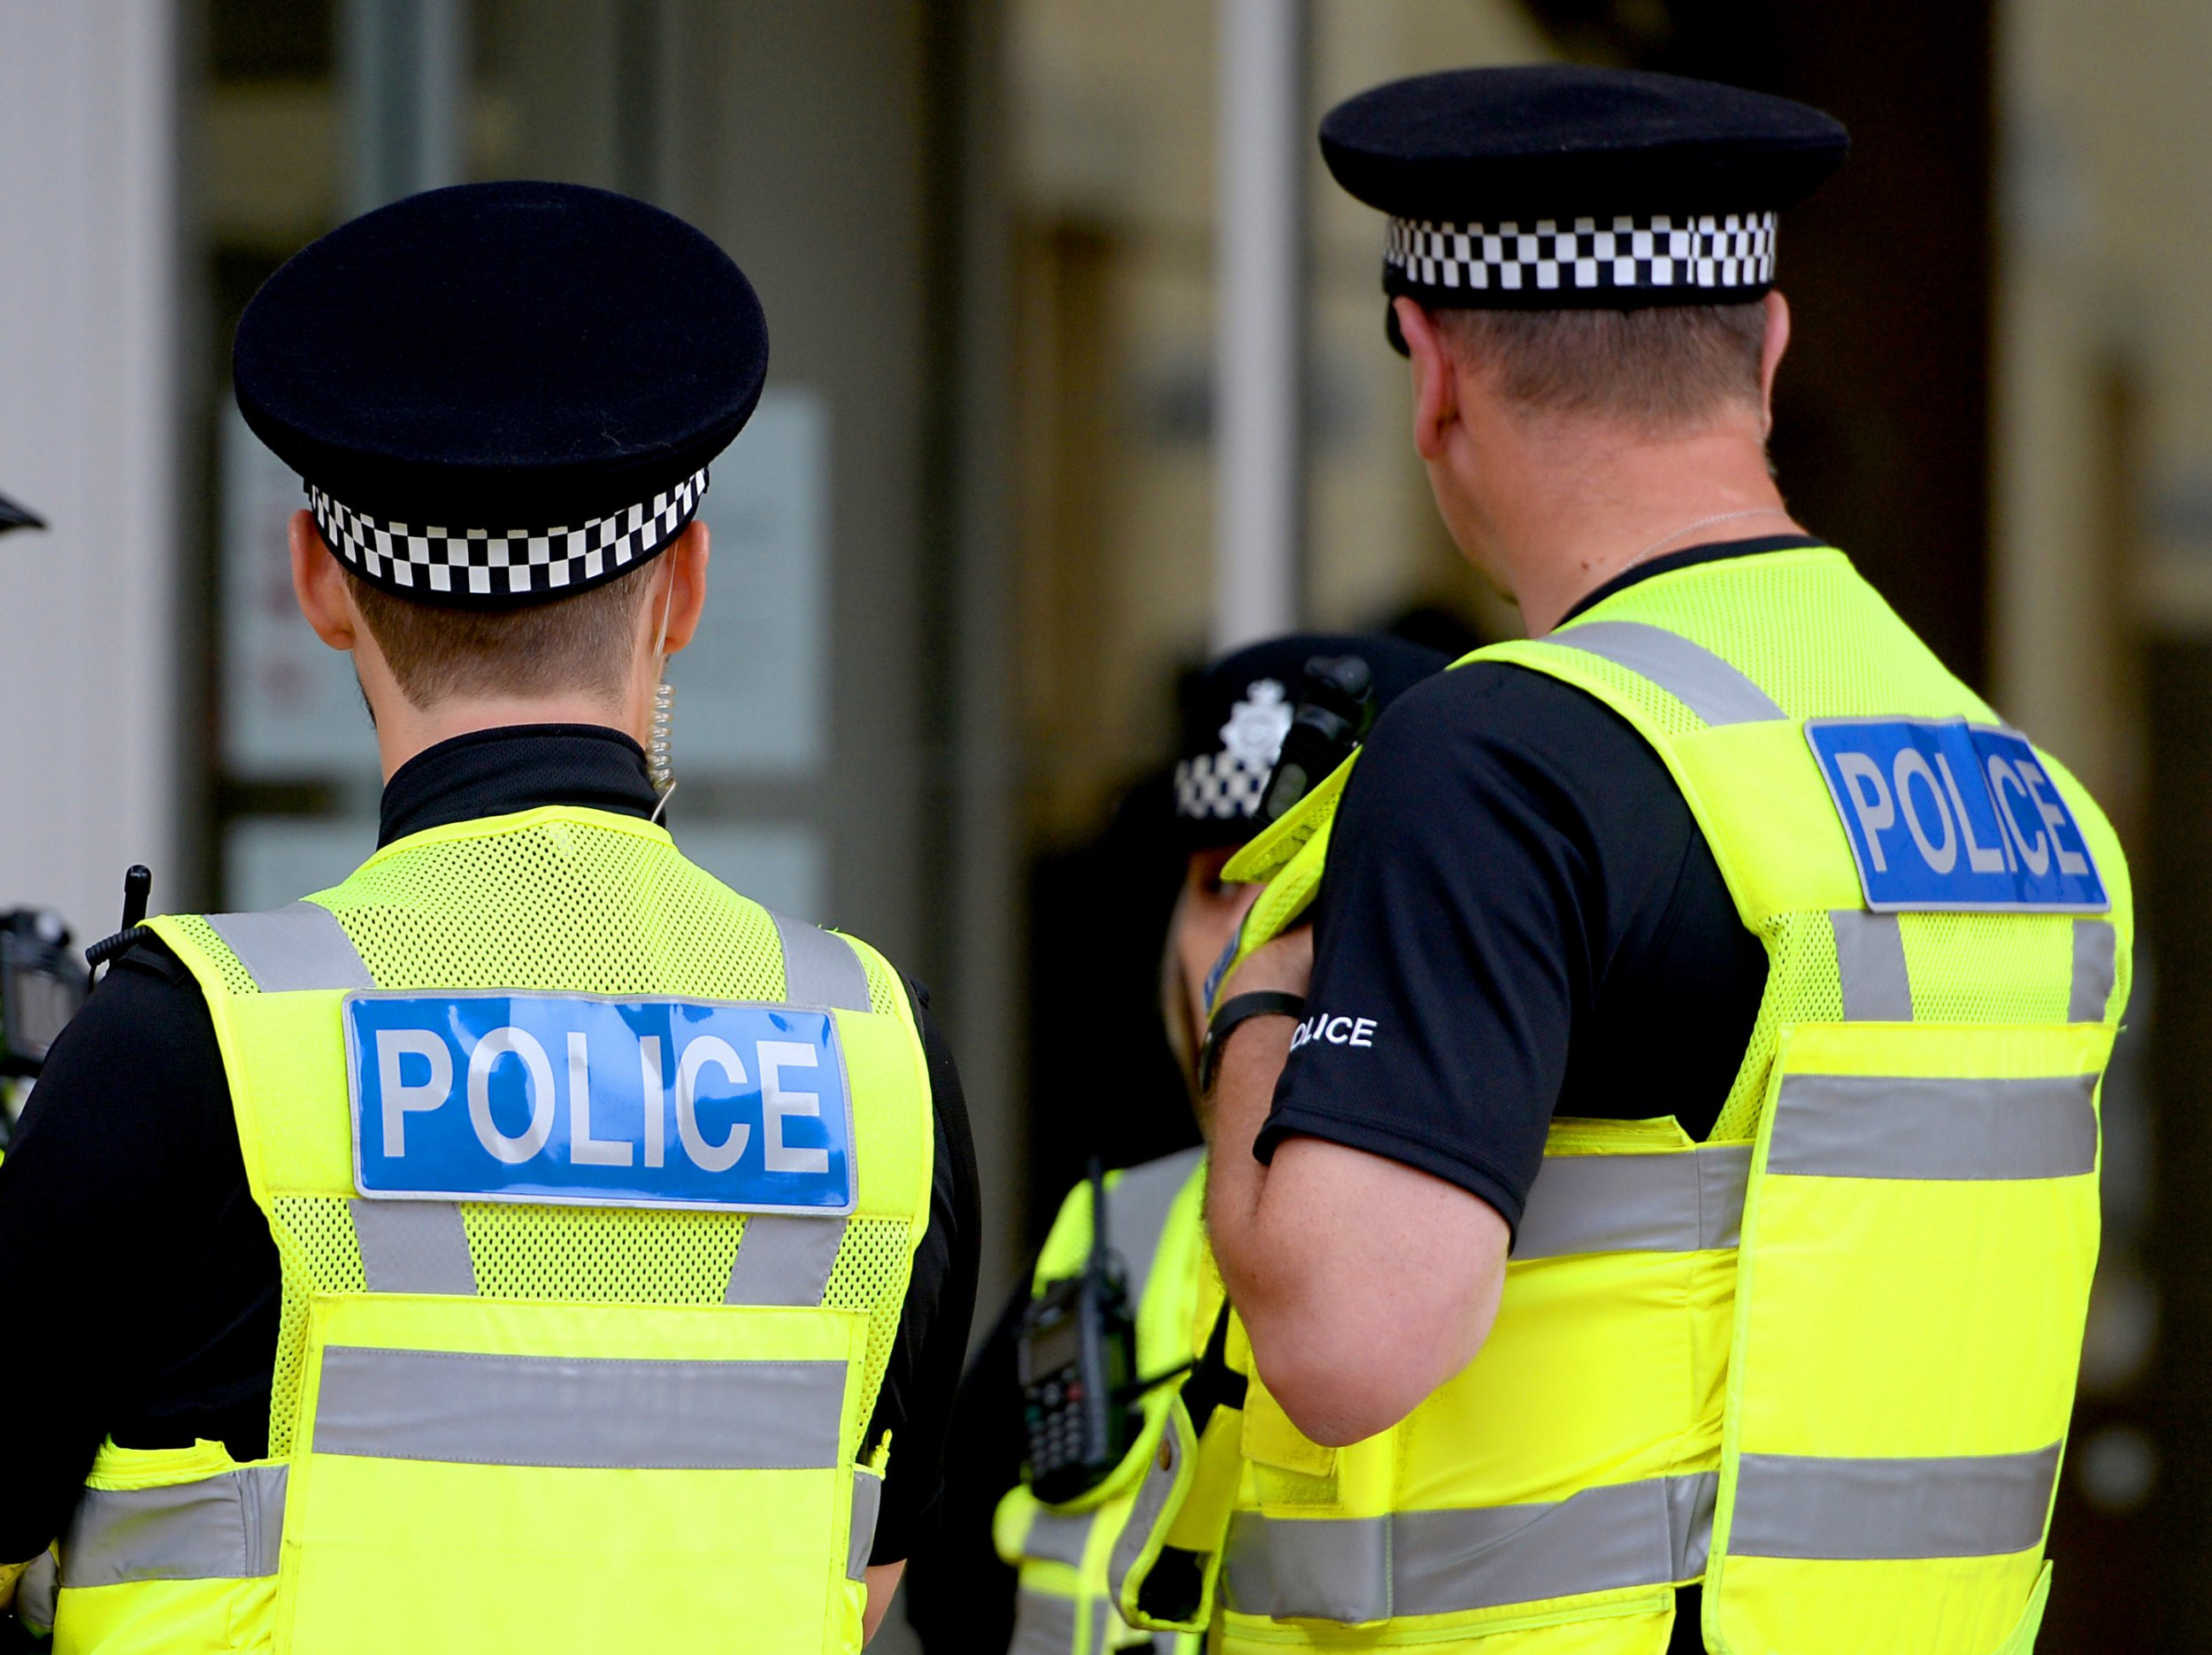 Police should focus on catching burglars not misogyny, top officer admits